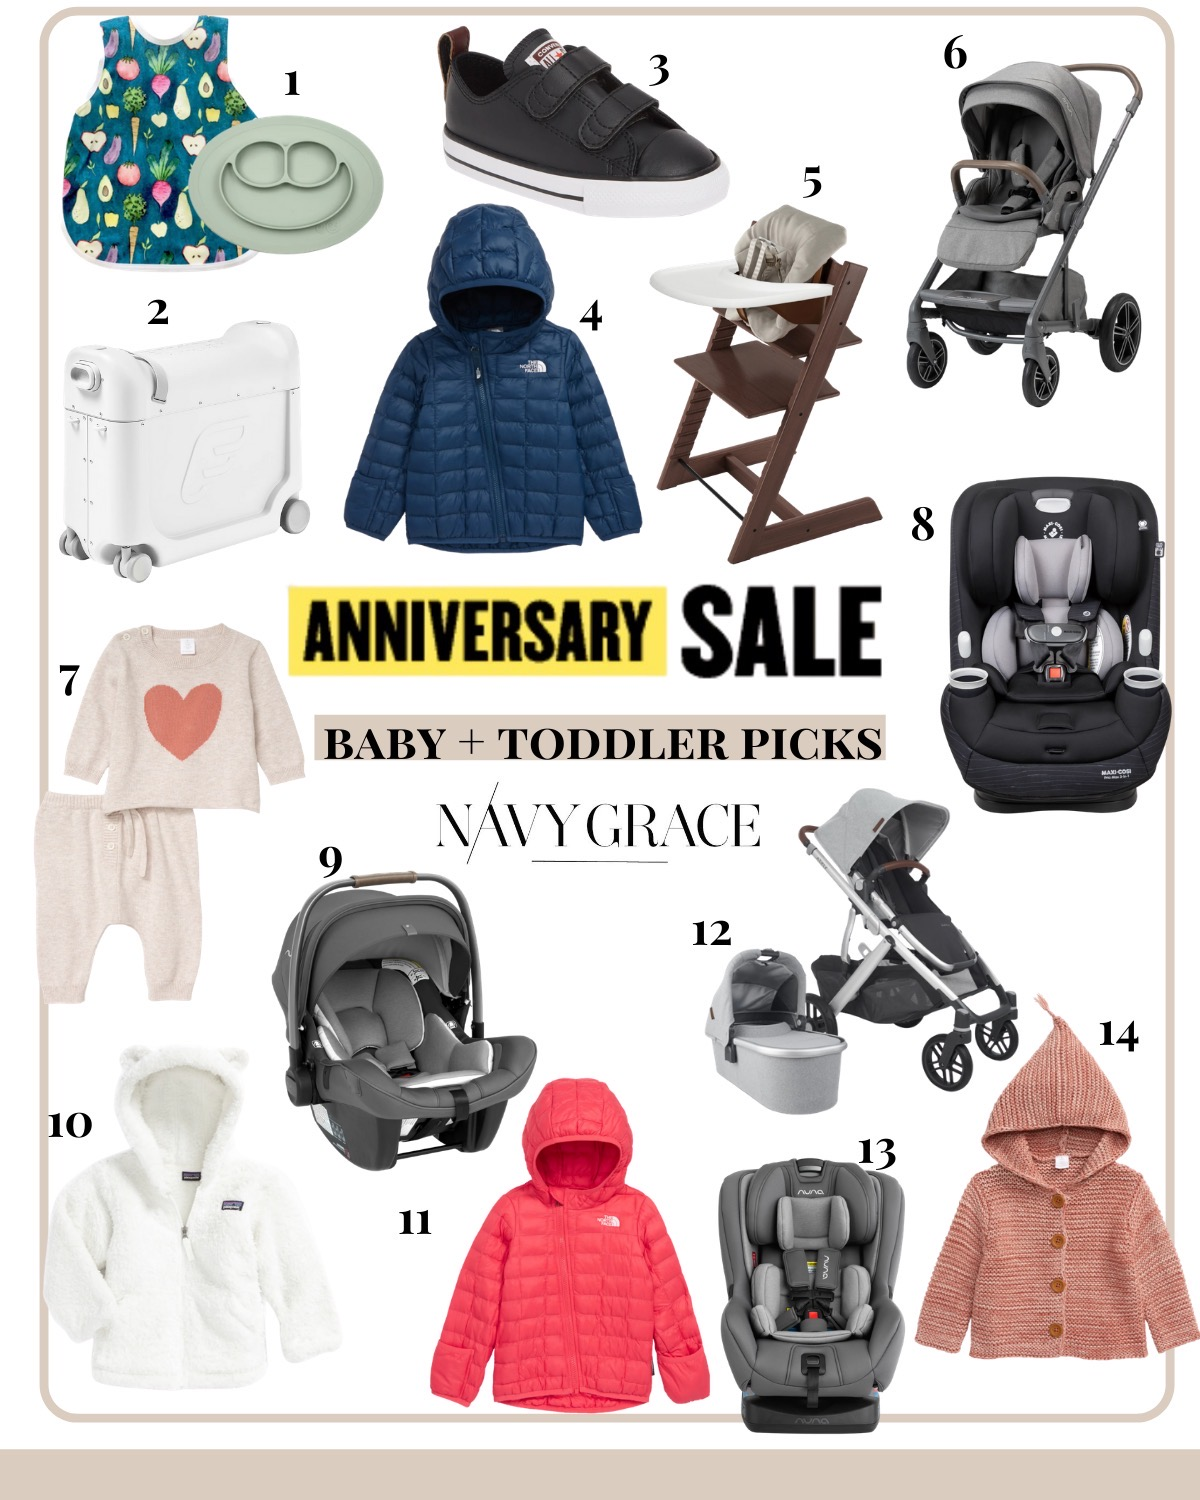 Nordstrom Anniversary Sale by popular San Diego fashion blog, Navy Grace: collage image of a Silicone Feeding Mat and Bib, Jet Kids Luggage,  Black Converse, The North Face Jacket, Stokke Baby High Chair, Nuna Mixx Stroller, Graphic Sweater and Pant Set, Maxi Cosi 3 in 1 Convertible Car Seat, Nuna Pipa Carseat, Patagonia Fleece Hoodie, The North Face Pink Jacket, Uppa Baby Vista Stroller, Nuna Rava Convertible Carseat, and Cotton Hooded Jacket.